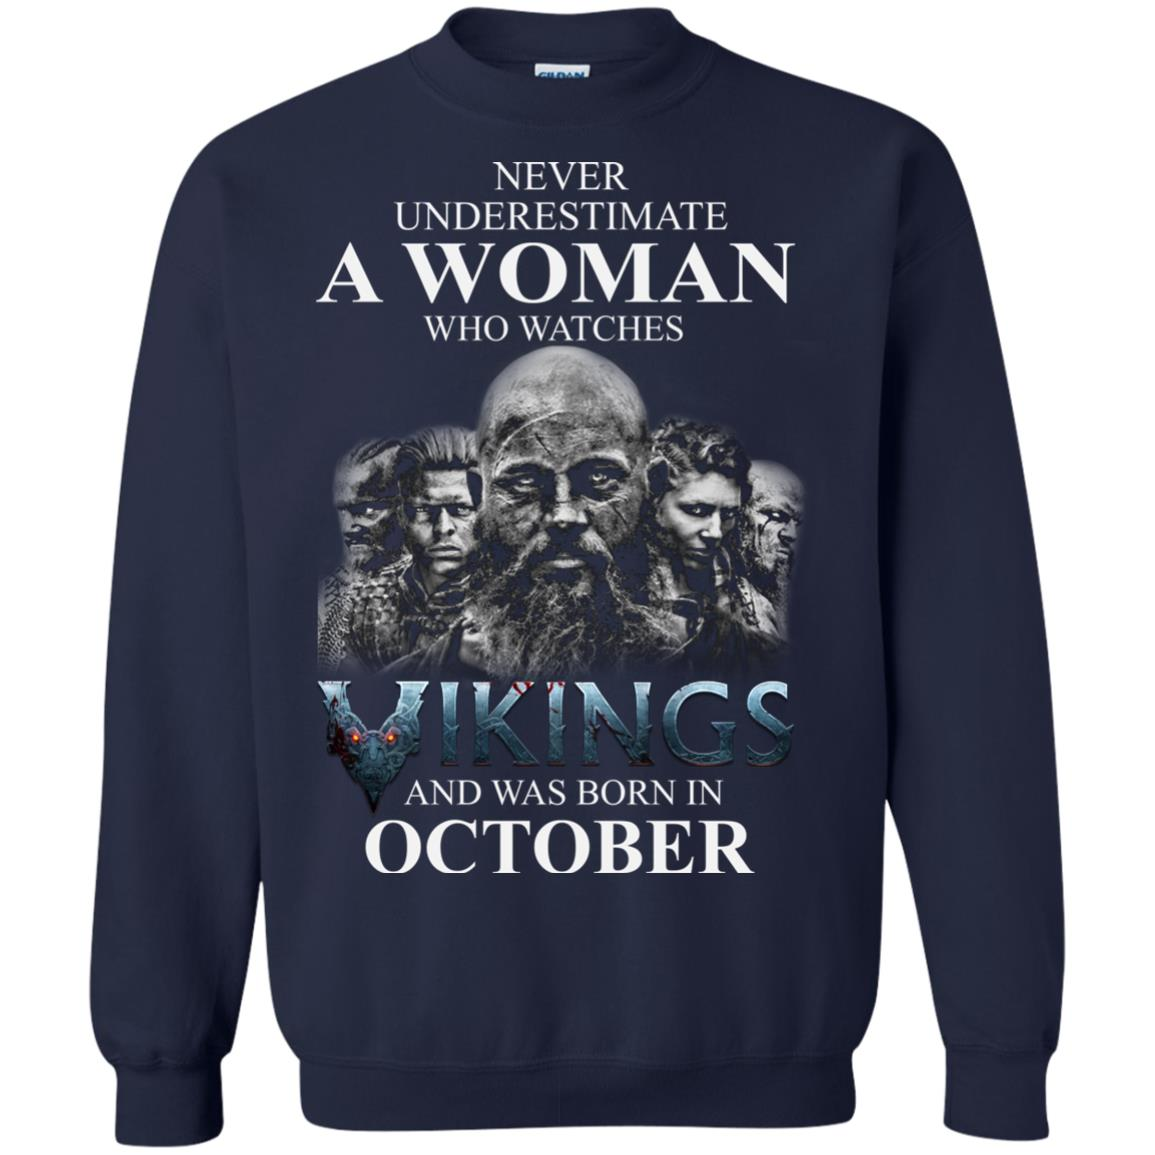 image 1250 - Never Underestimate A woman who watches Vikings and was born in October shirt